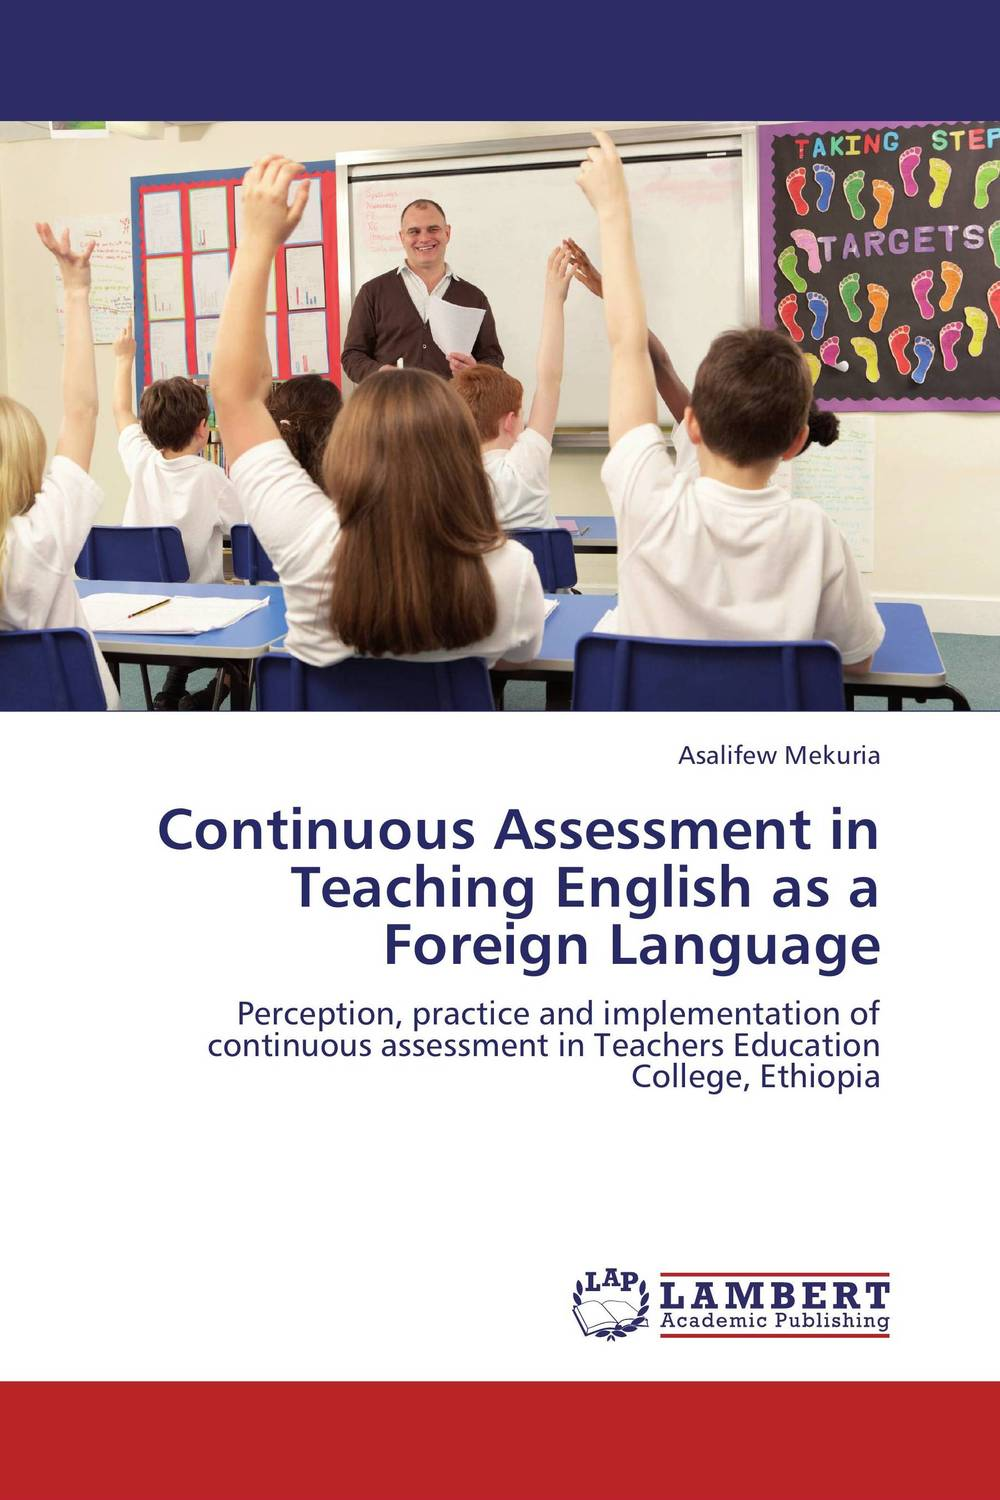 Continuous Assessment in Teaching English as a Foreign Language performance and durability assessment